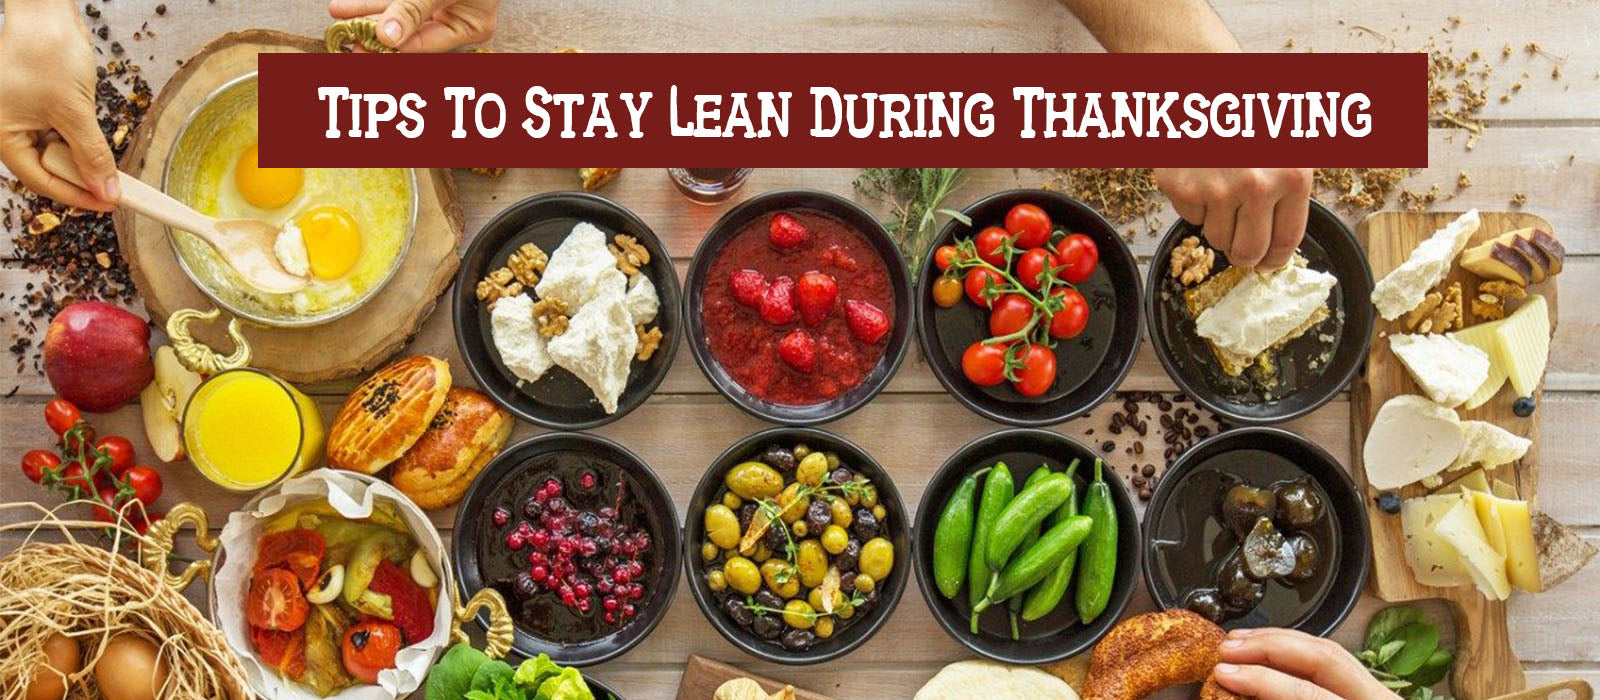 Tips To Stay Lean During Thanksgiving